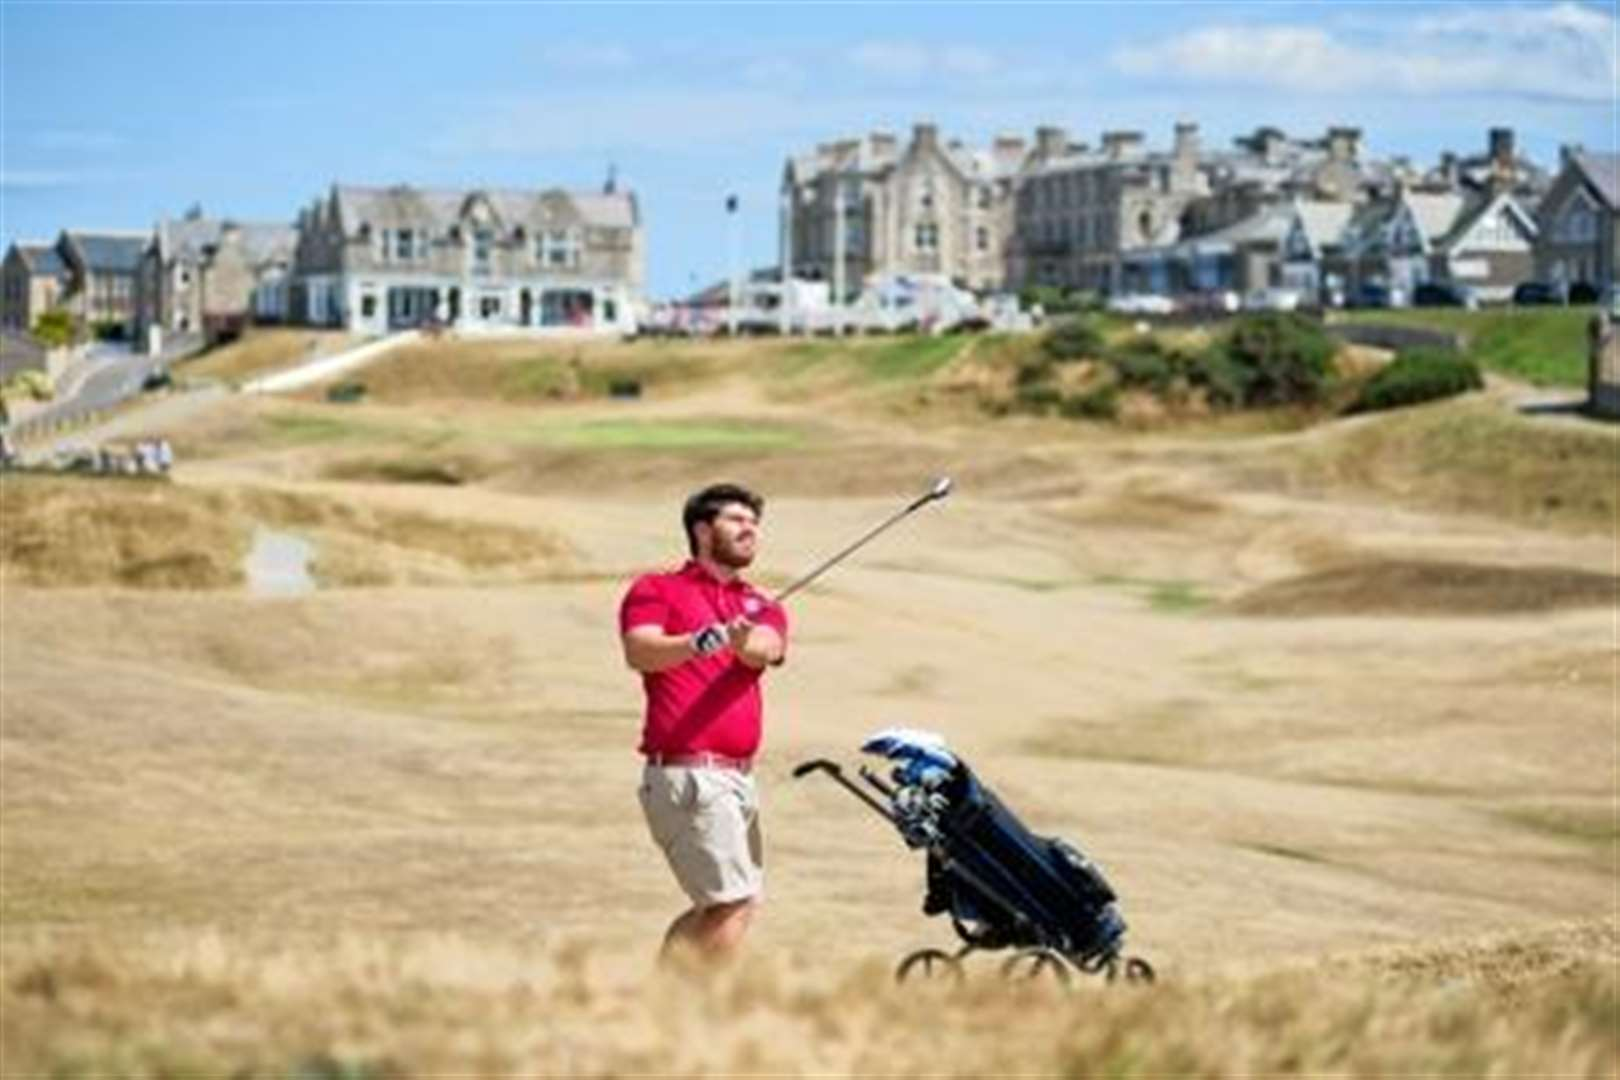 Race is on for Moray golf crown